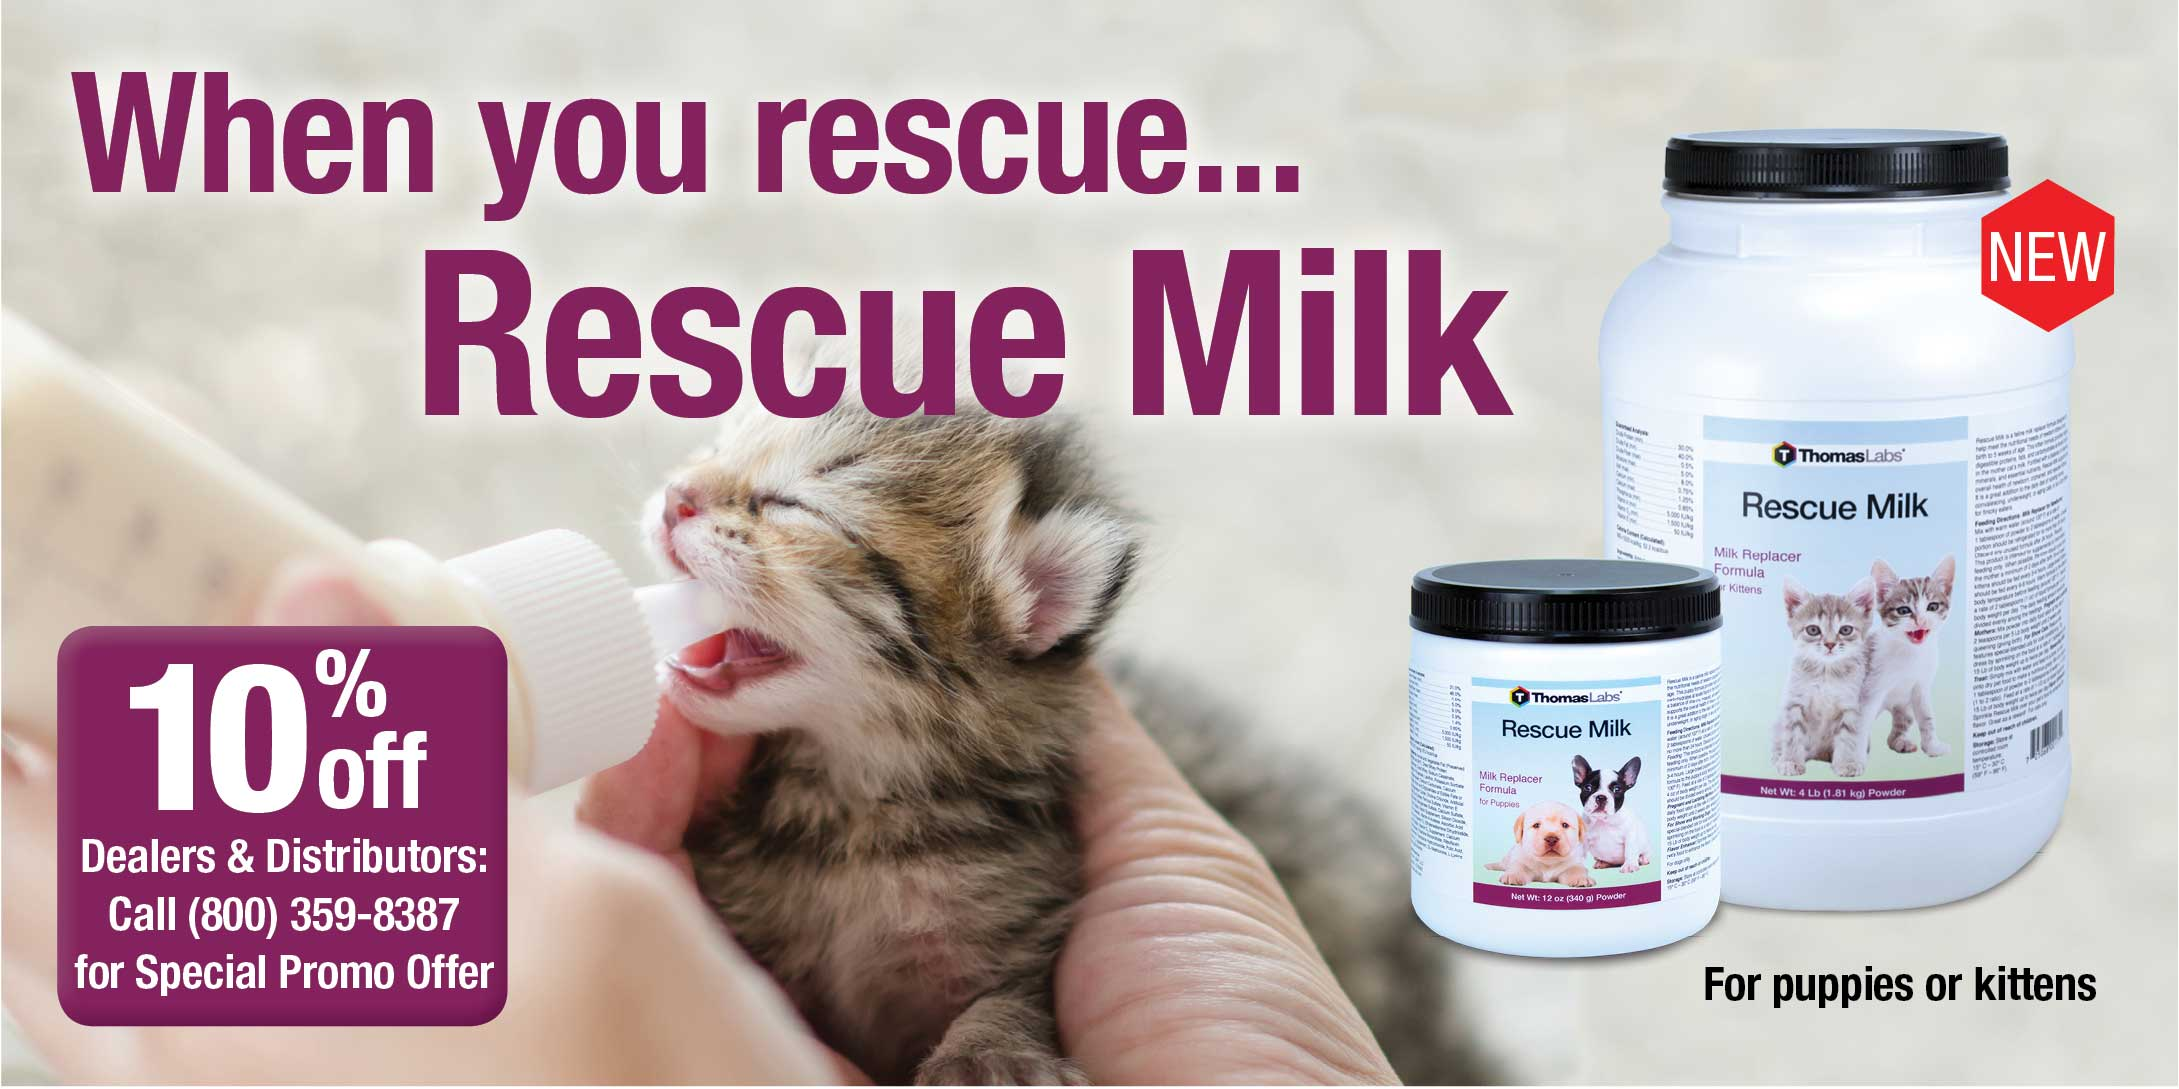 A better kitten milk replacer - Rescue Milk from Thomas Labs